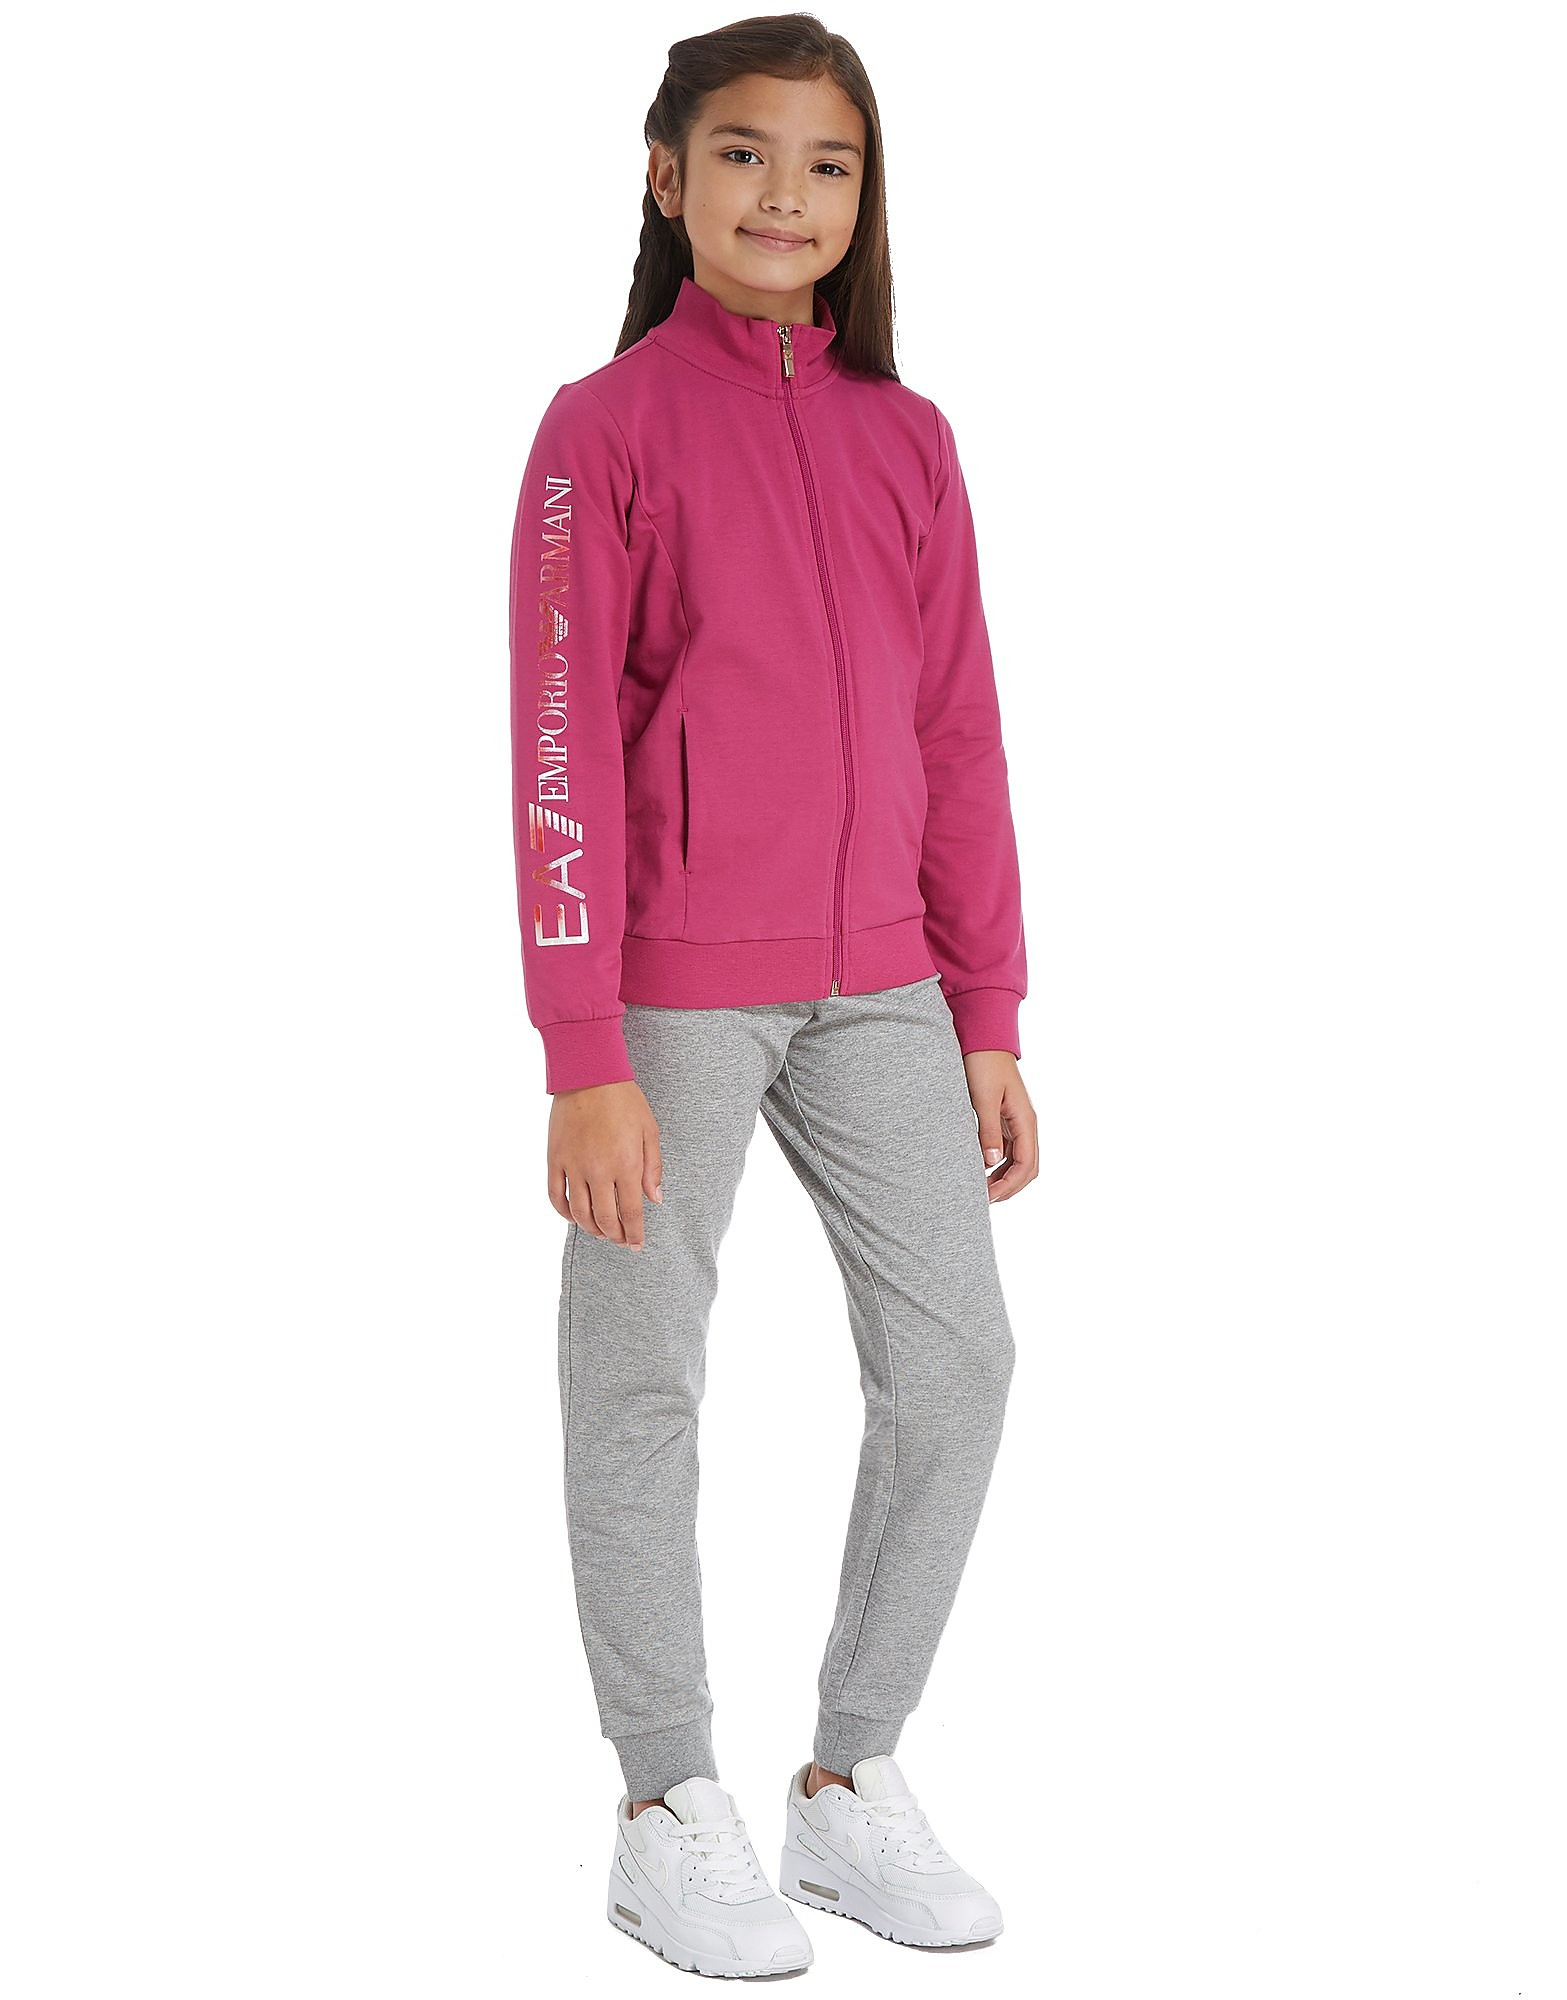 Emporio Armani EA7 Girls' Fun Tracksuit Junior